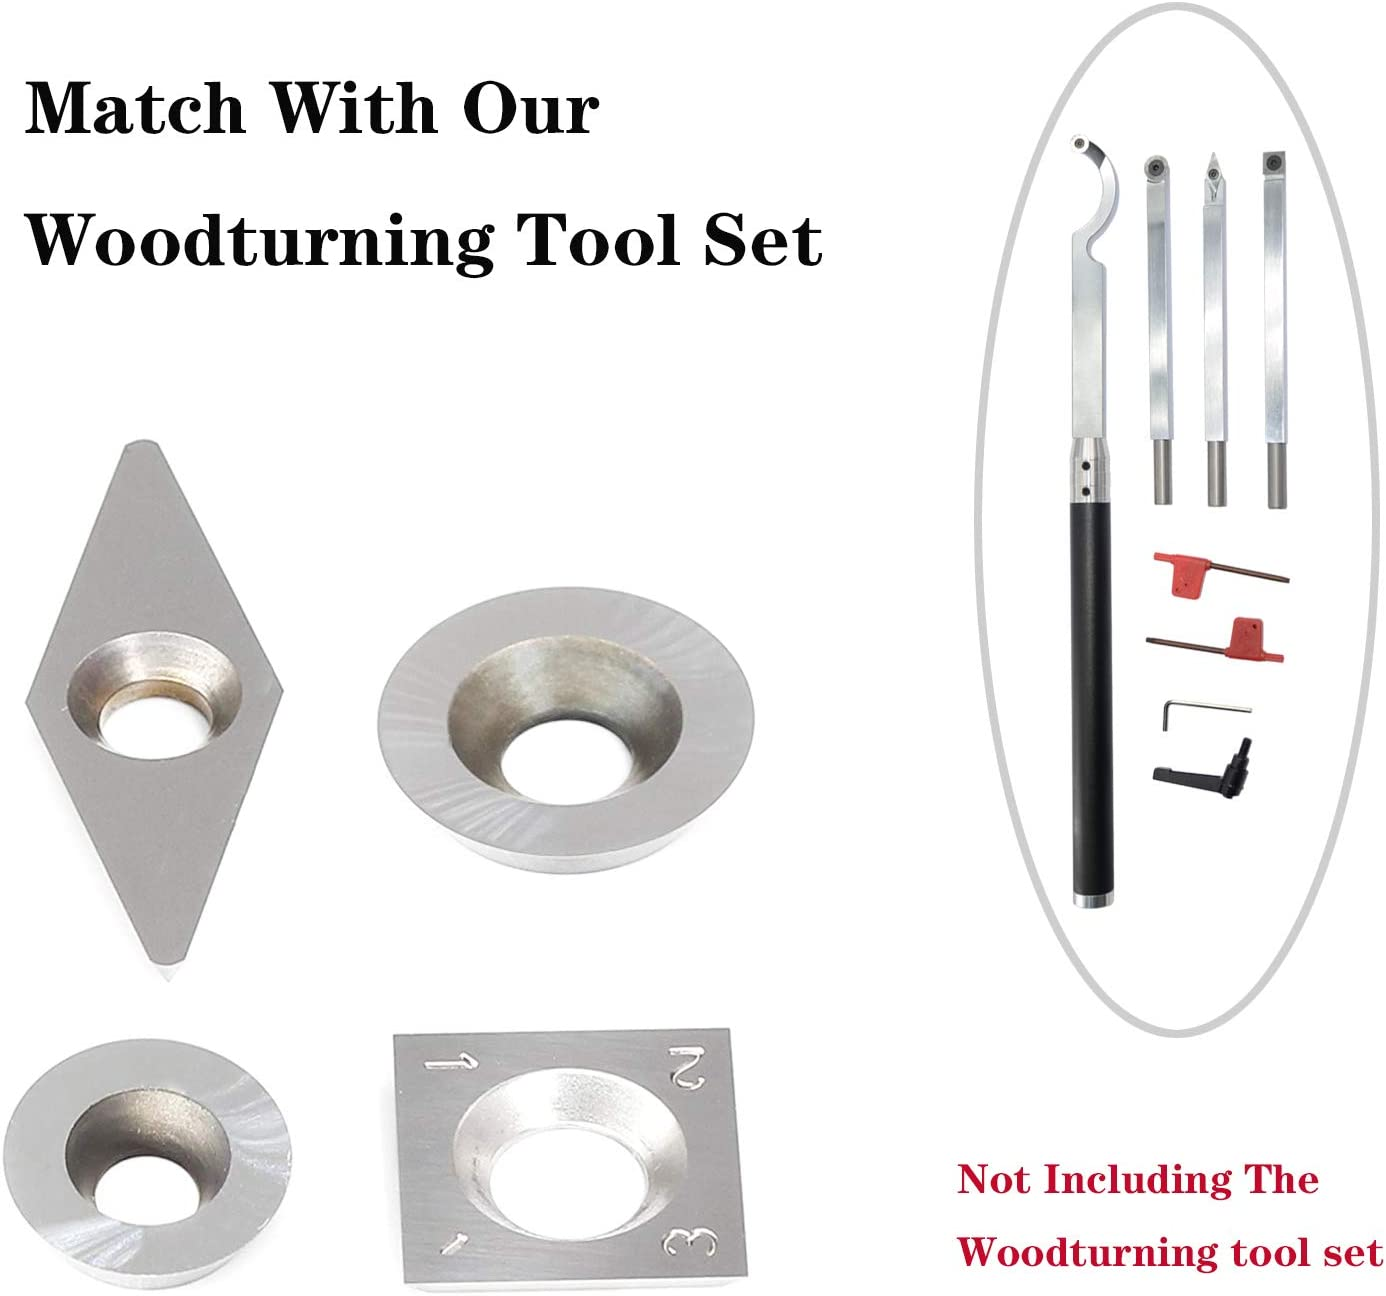 Square 14mm 4pcs Carbide Turning Inserts Cutters Set for Indexable Lathe Turning Tool Holder Insert Replacement of Round 16mm 12mm Fit for AT04 Woodturning Tool Set Diamond 28mm